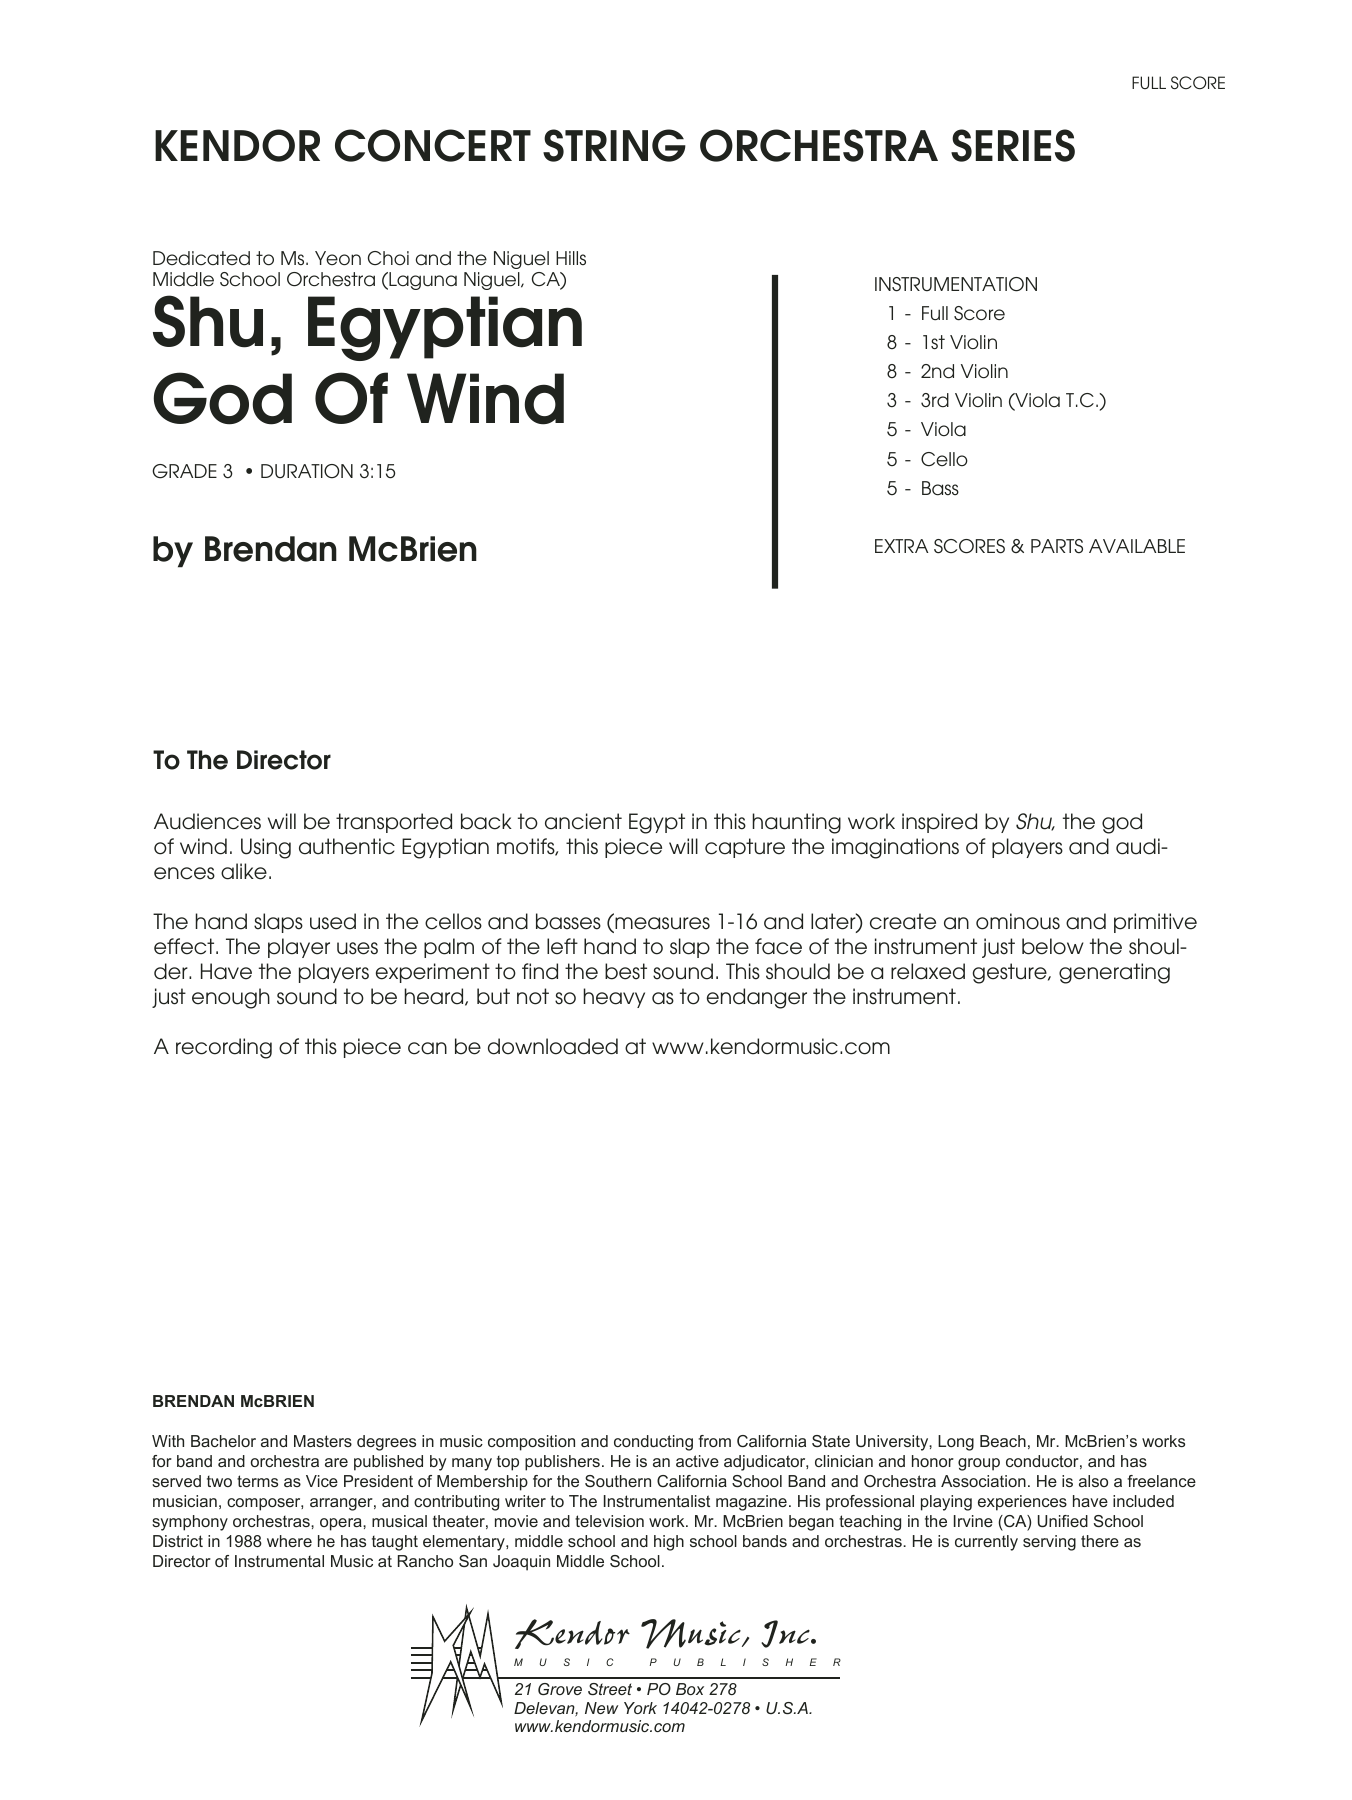 Shu, Egyptian God Of Wind (COMPLETE) sheet music for orchestra by Brendan McBrien. Score Image Preview.